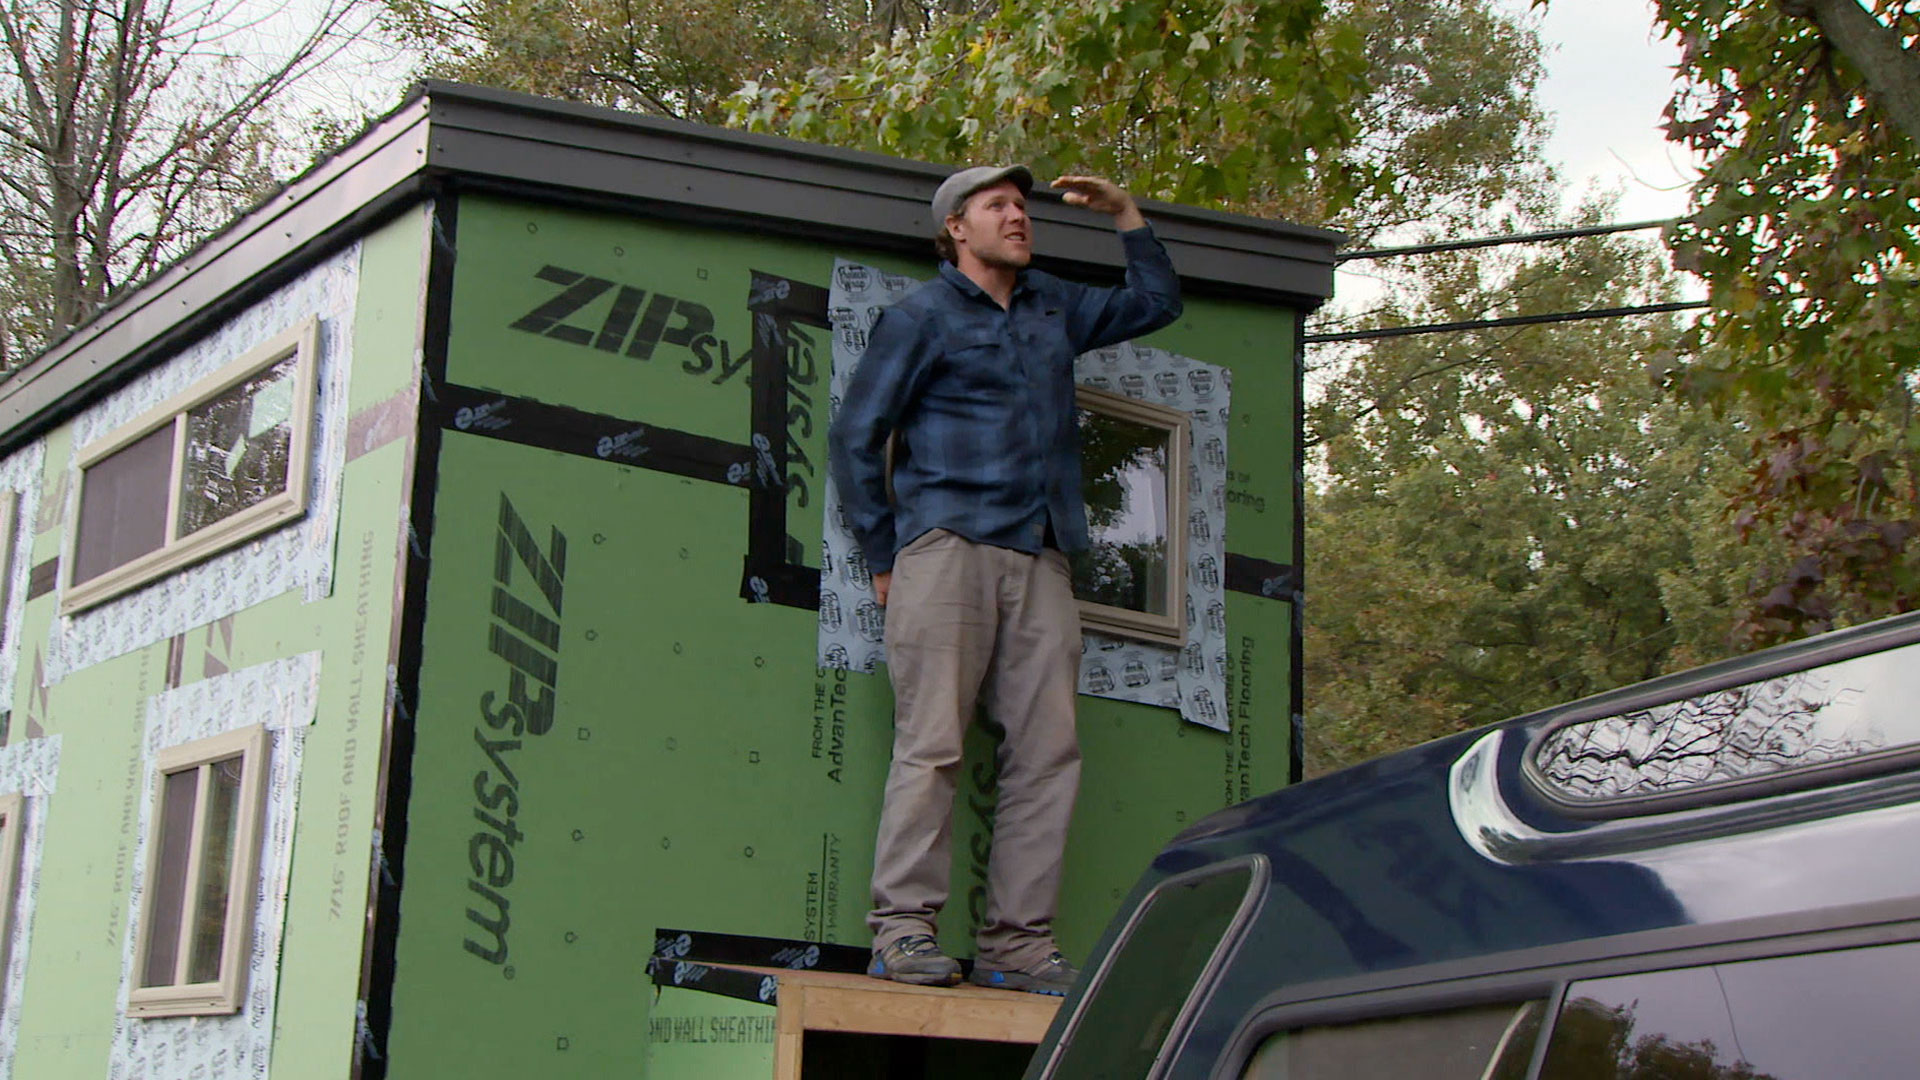 watch 204 sq. ft. climbing gym full episode - tiny house nation | fyi